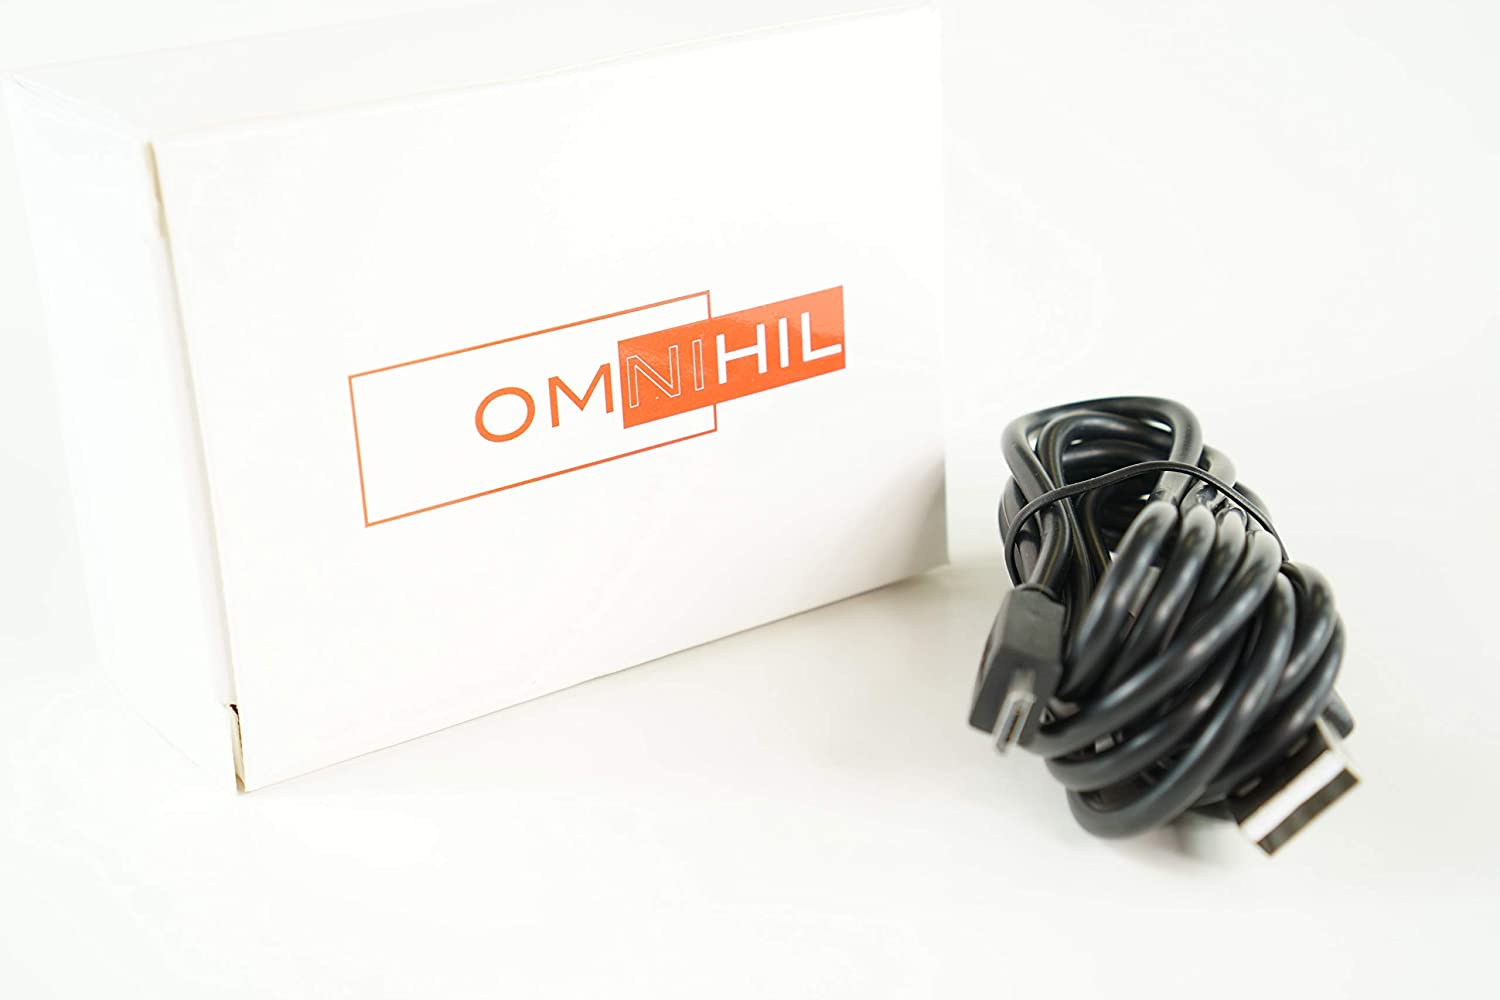 OMNIHIL 5 Feet Long High Speed USB 2.0 Cable Compatible with Bose SoundTouch 20 Music System